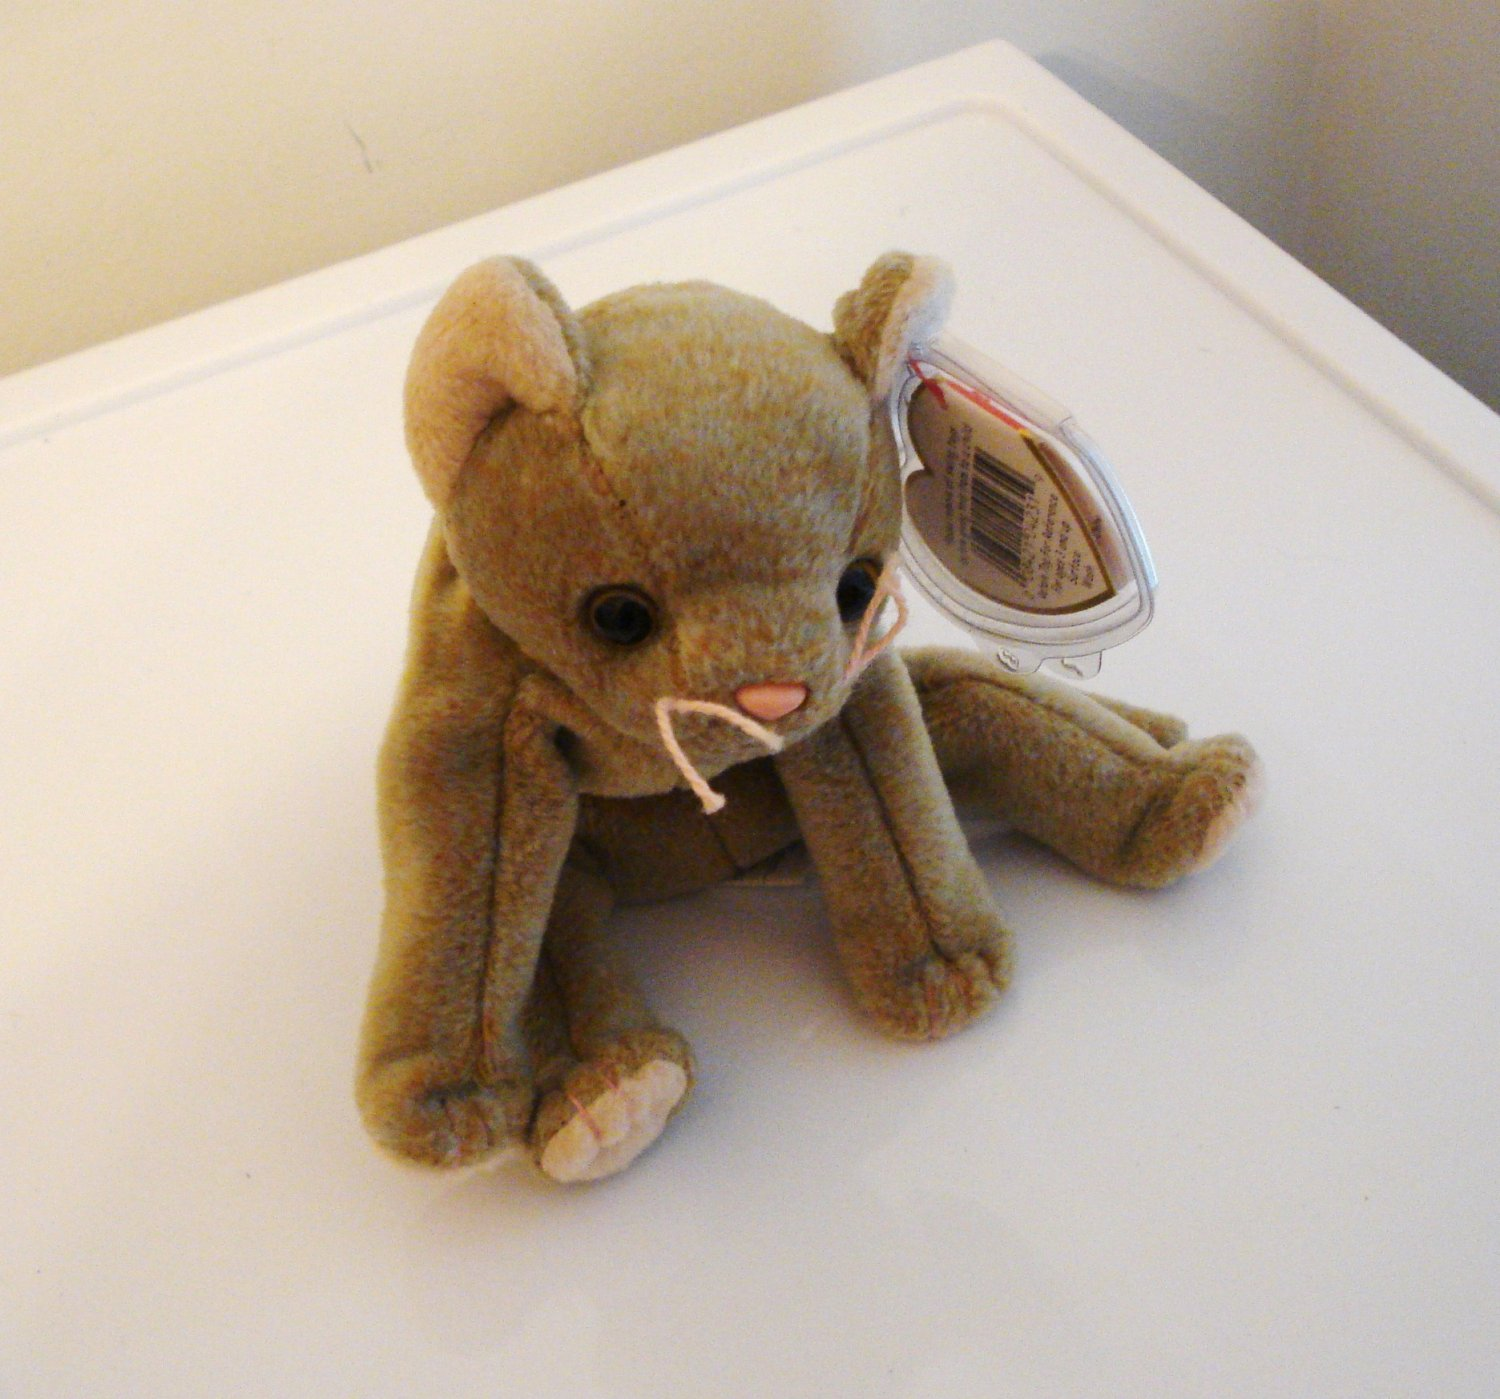 Scat the tan cat 1998 Ty Beanie Baby toy retired mint  cm1449